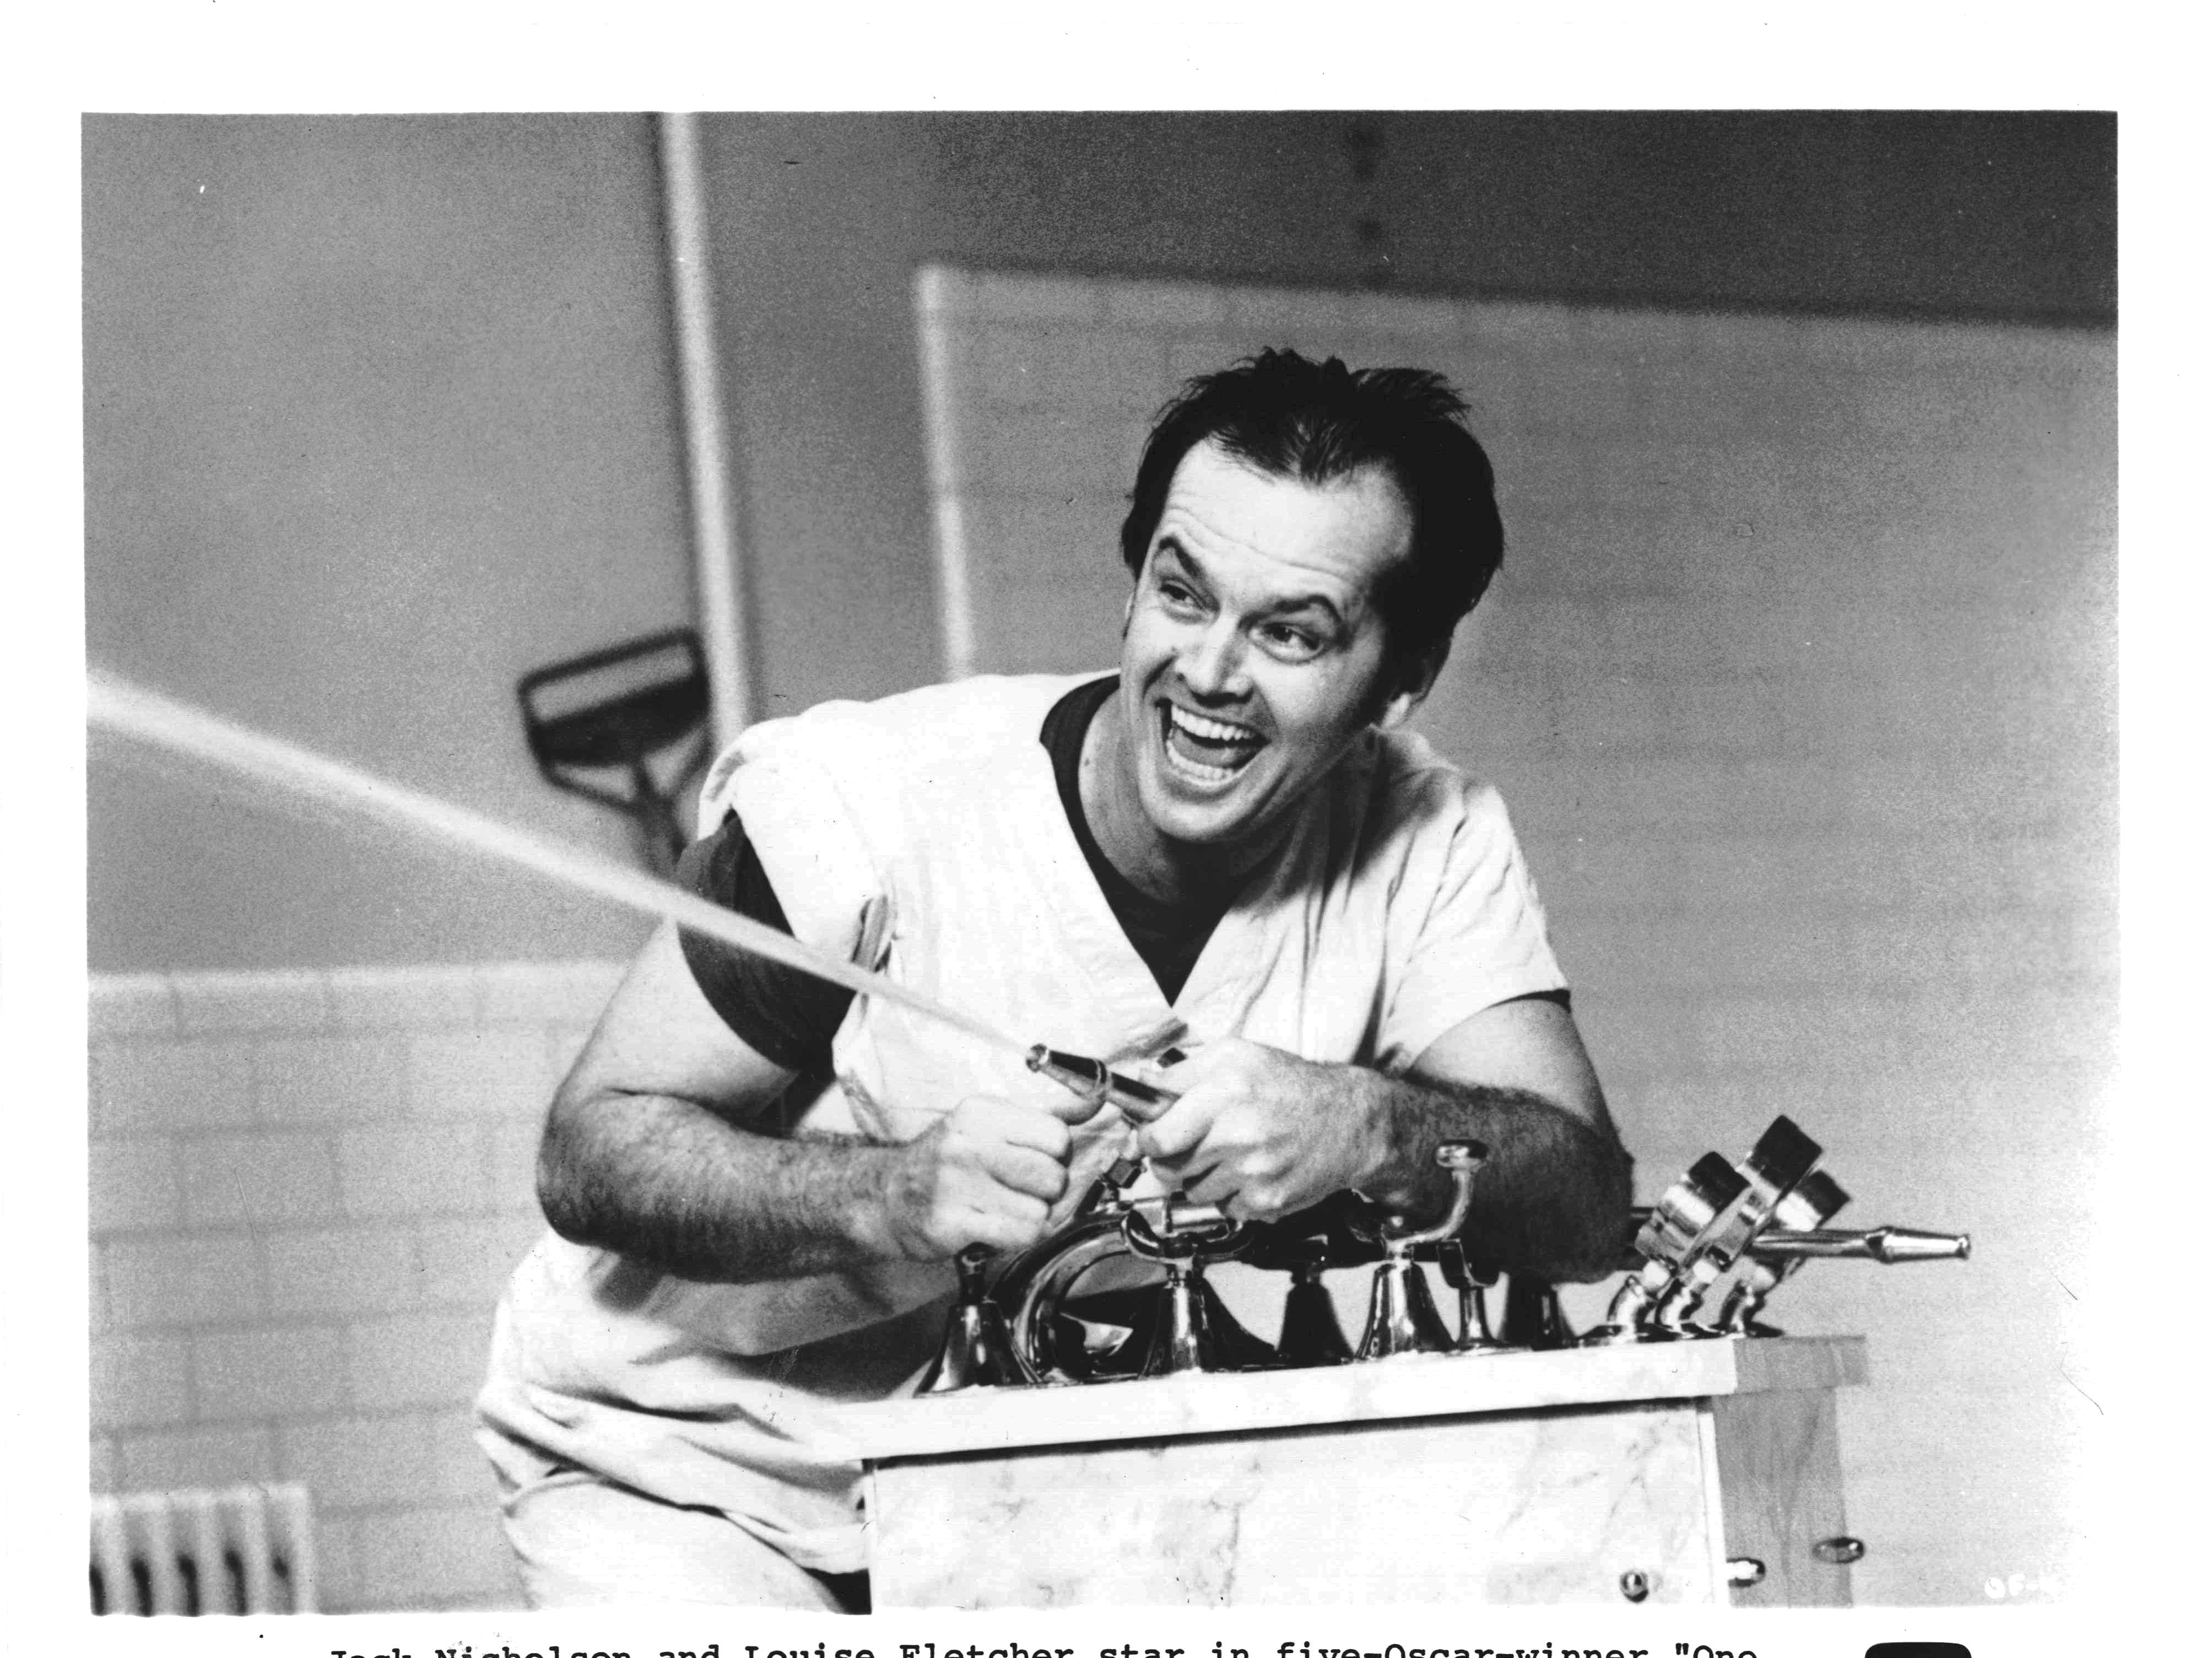 Jack Nicholson in a scene from the motion picture 'One Flew Over the Cuckoo's Nest'